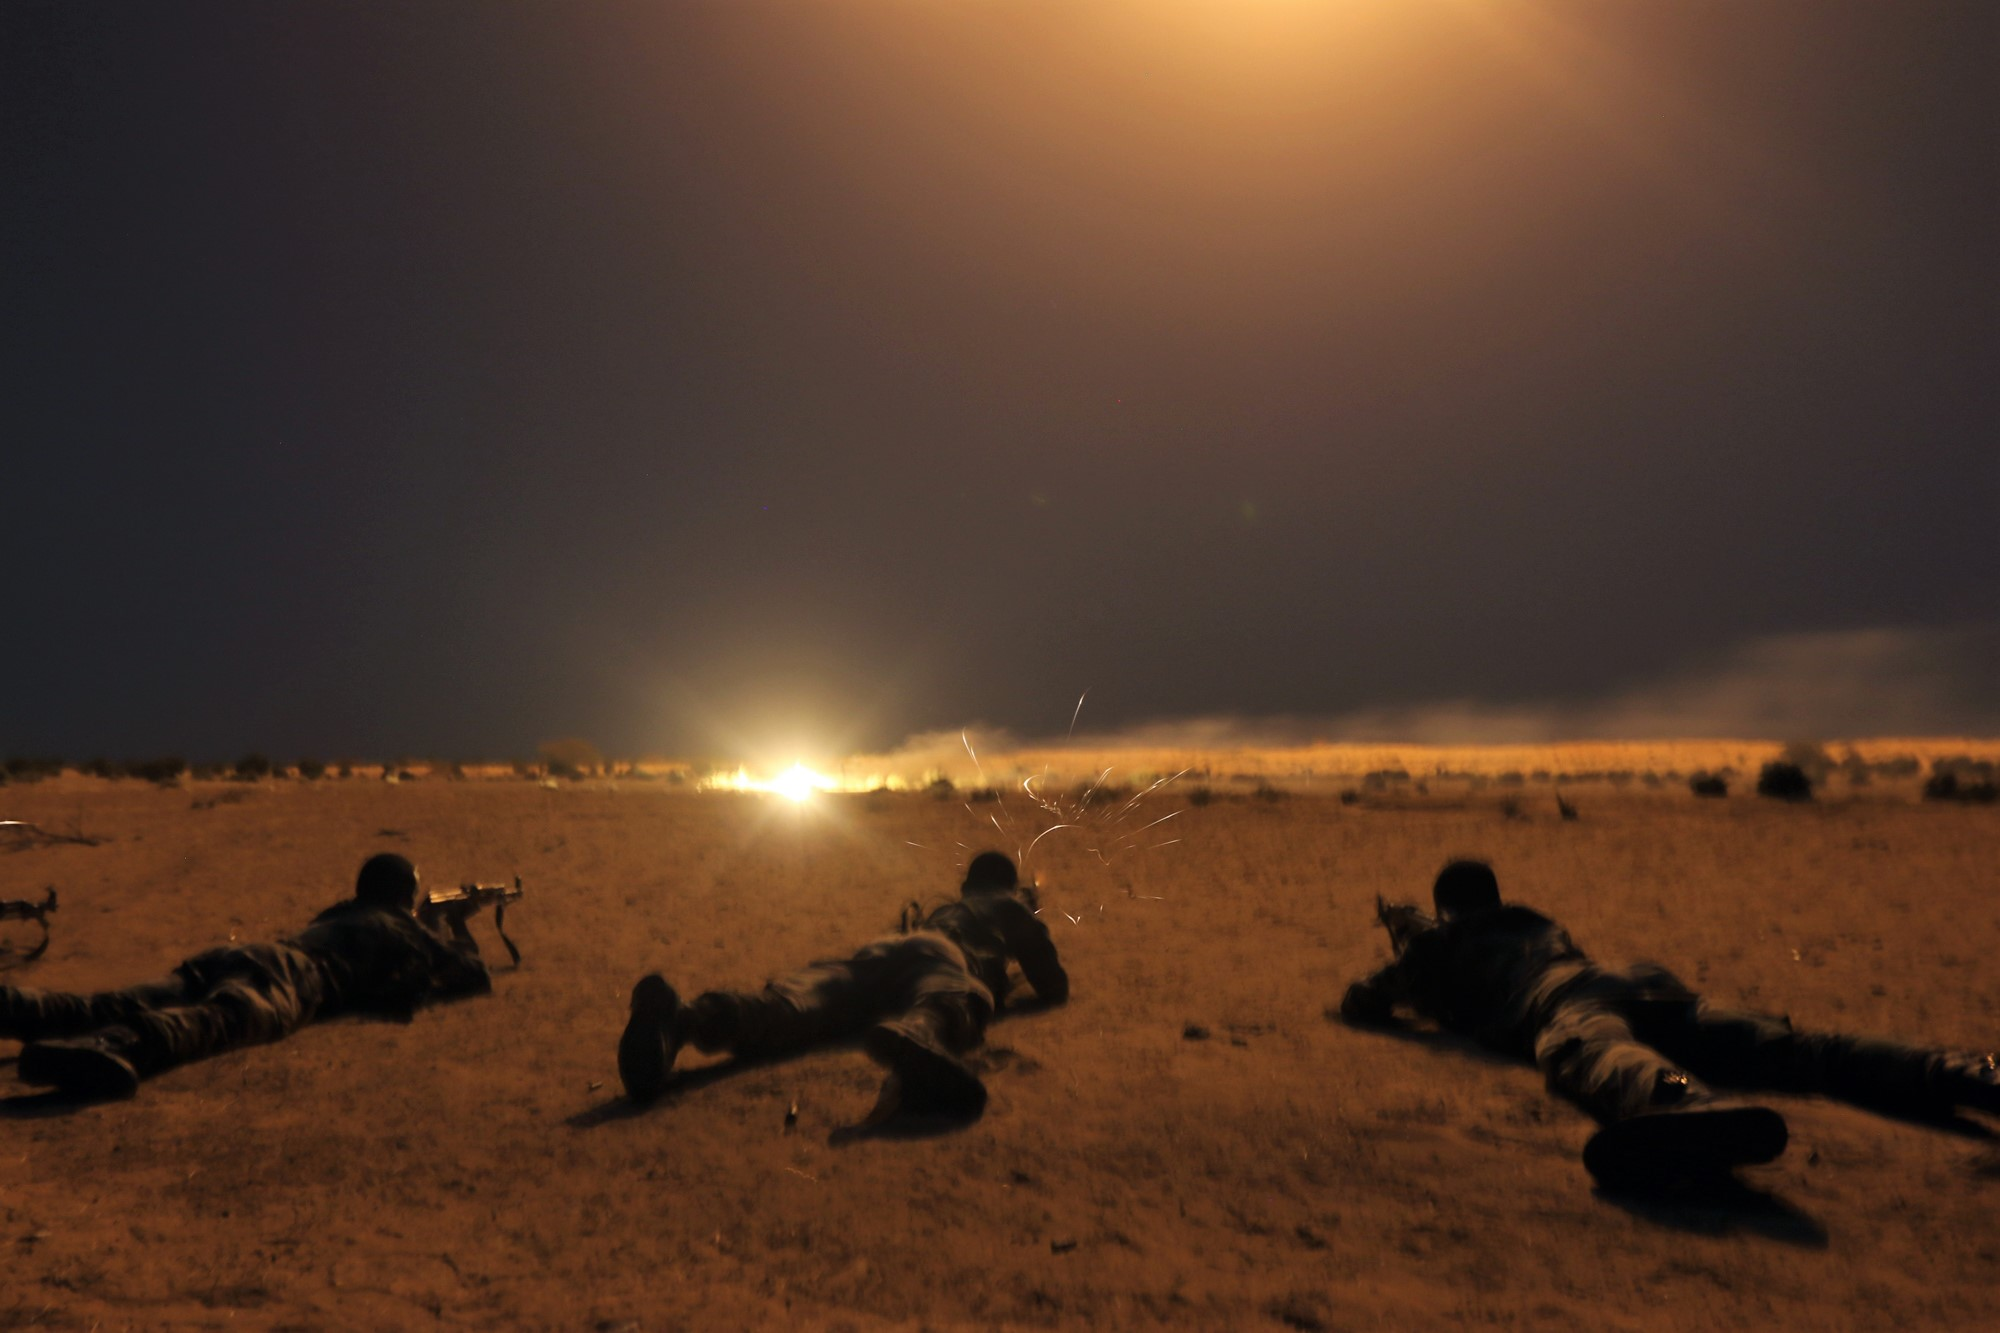 Nigerien army soldiers shoot targets under 60mm illumination mortar rounds as a part of Exercise Flintlock 2017 in Diffa, Niger, March 9, 2017. Skills learned at Flintlock enable warriors in the multinational fight against violent extremist organizations. (Photo by  Staff Sgt. Kulani Lakanaria/Released)